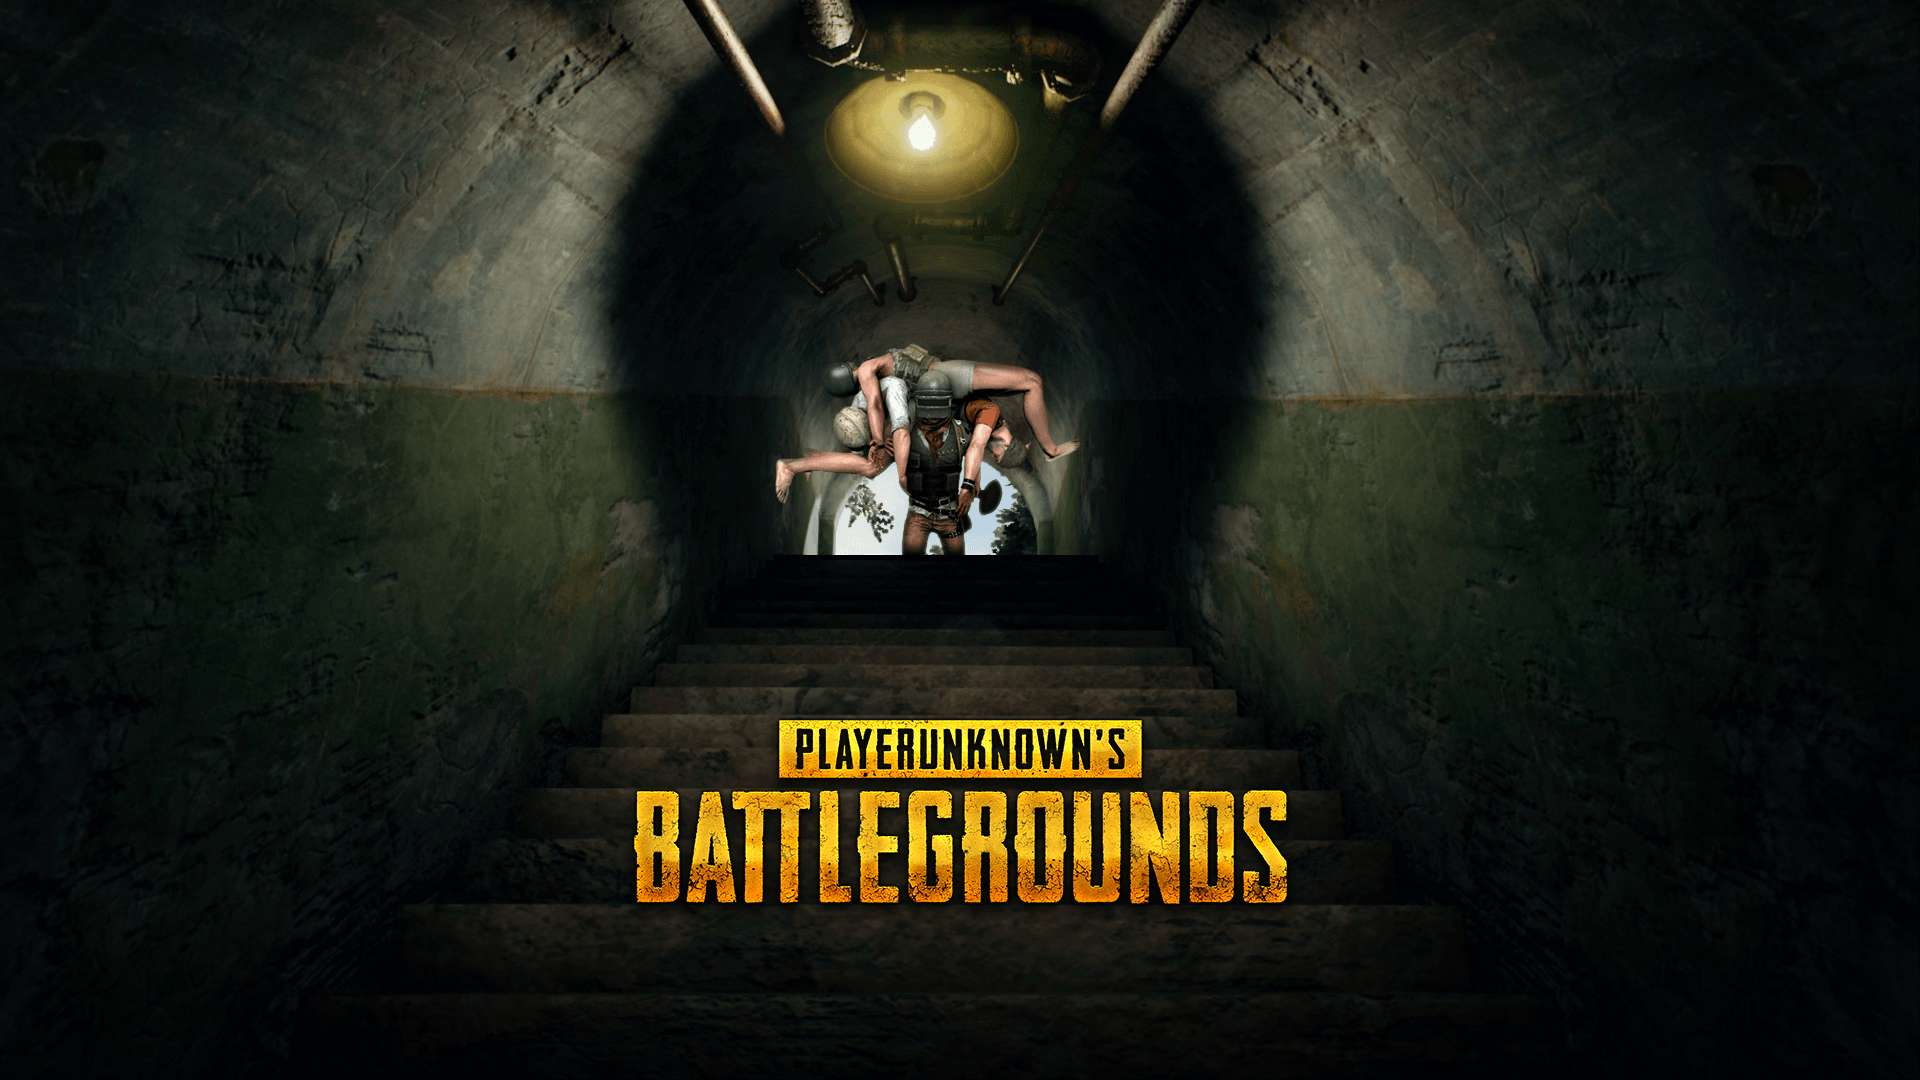 Pubg Wallpaper Dual Monitor: PlayerUnknown's Battlegrounds Wallpapers